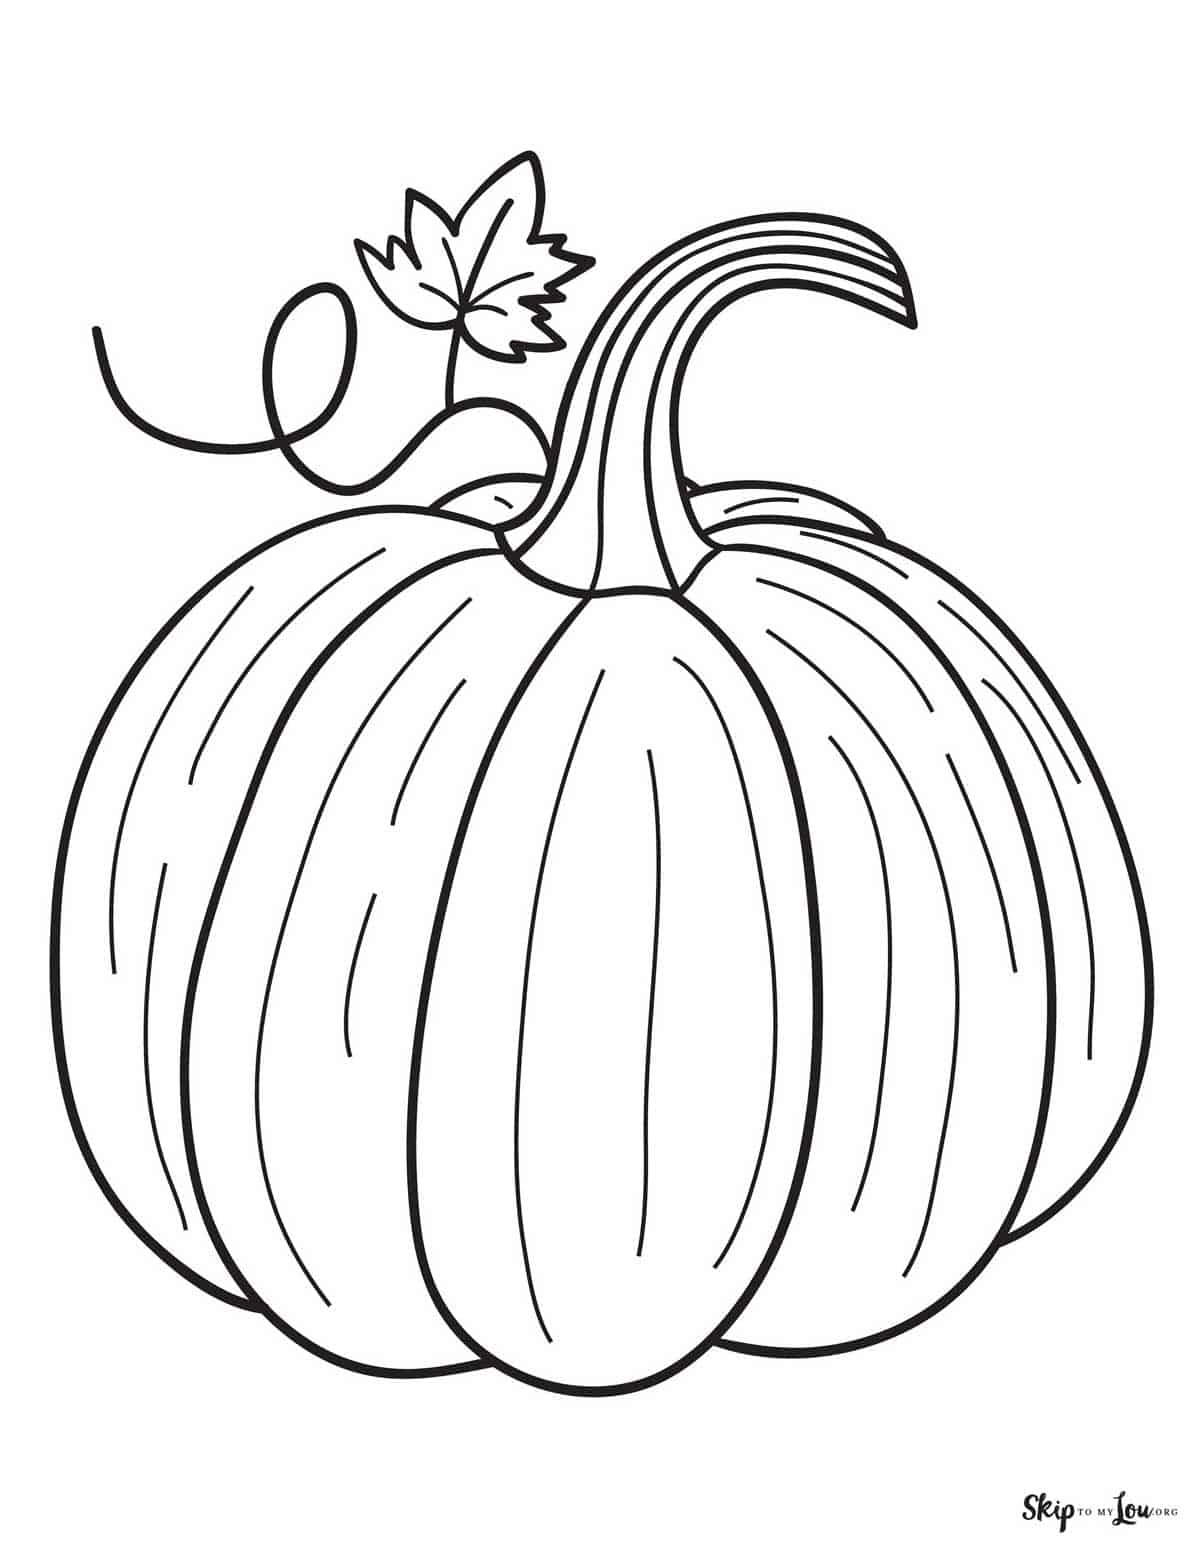 FREE Printable Fall Coloring Pages | Skip To My Lou